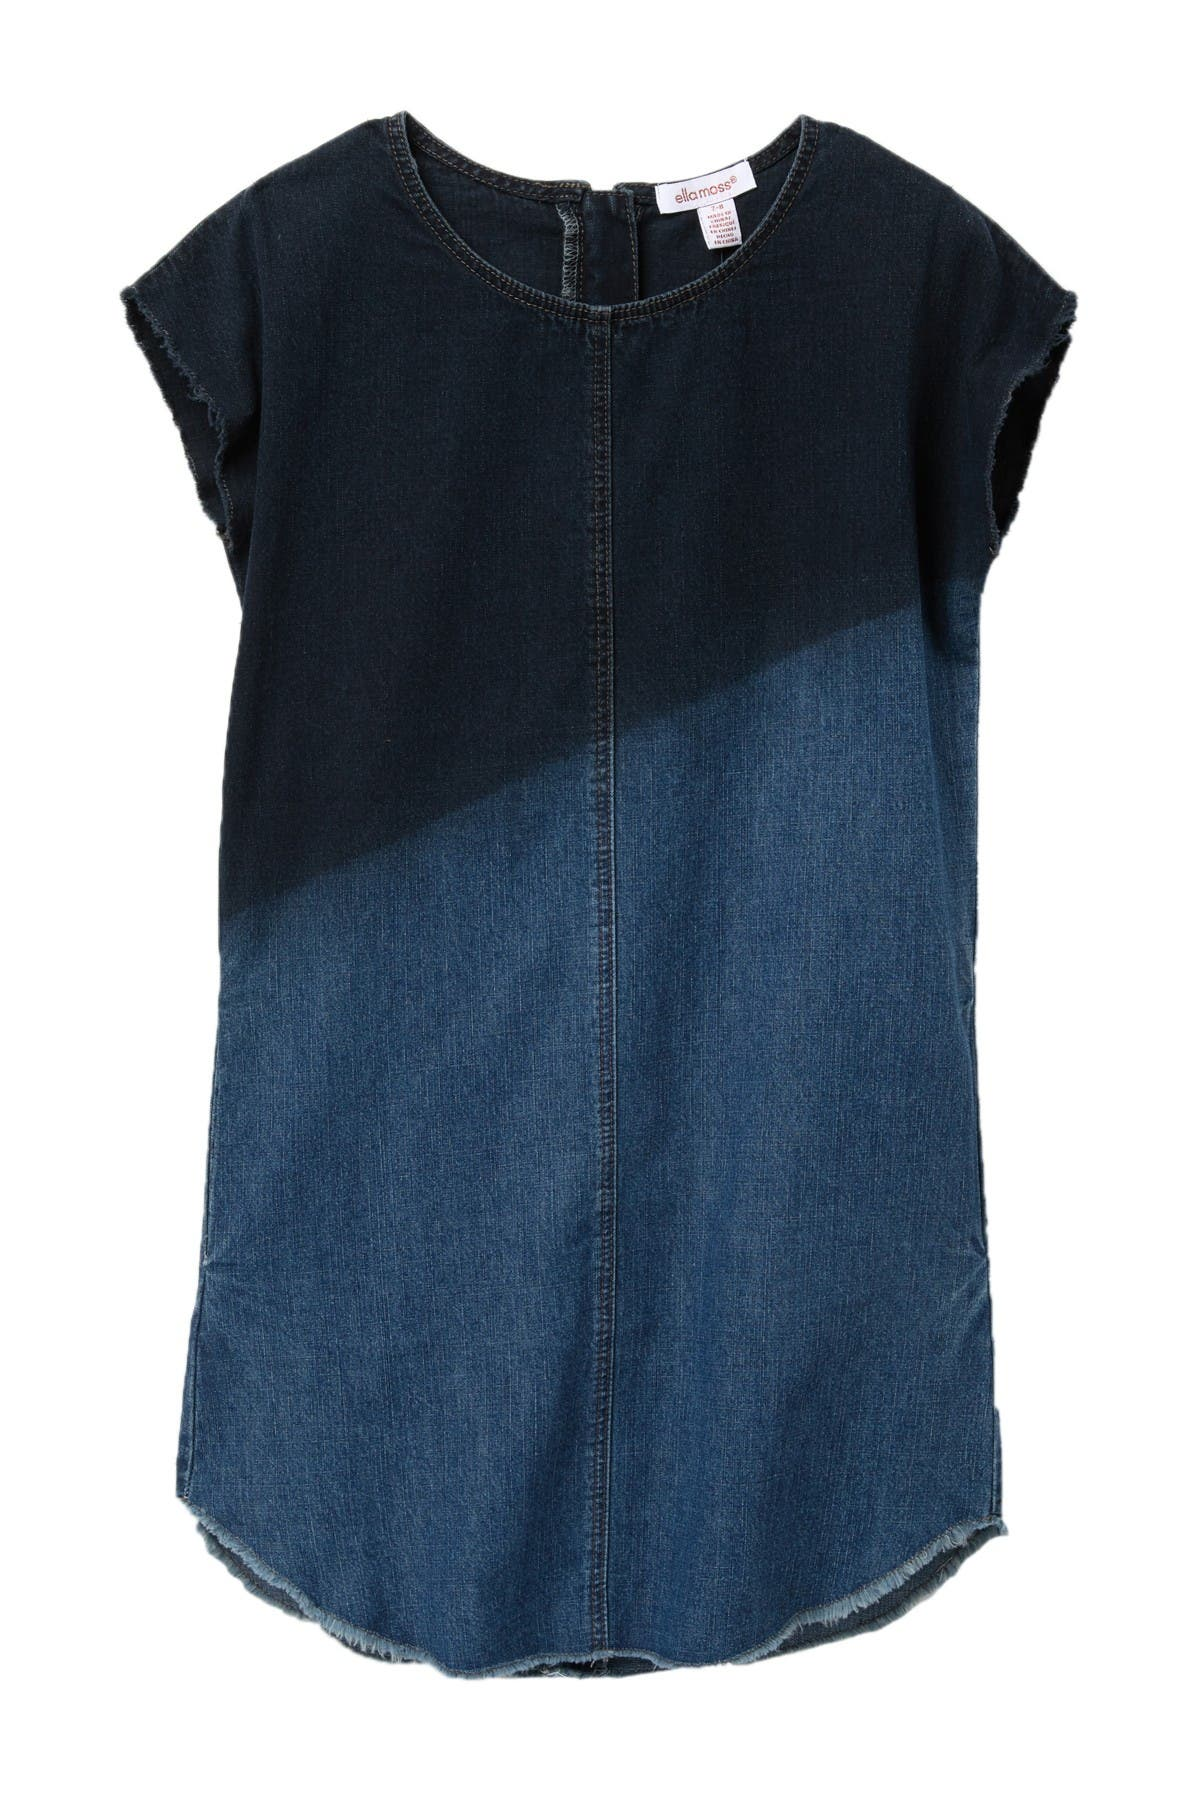 Image of Ella Moss Dip-Dye Denim Shirt Dress